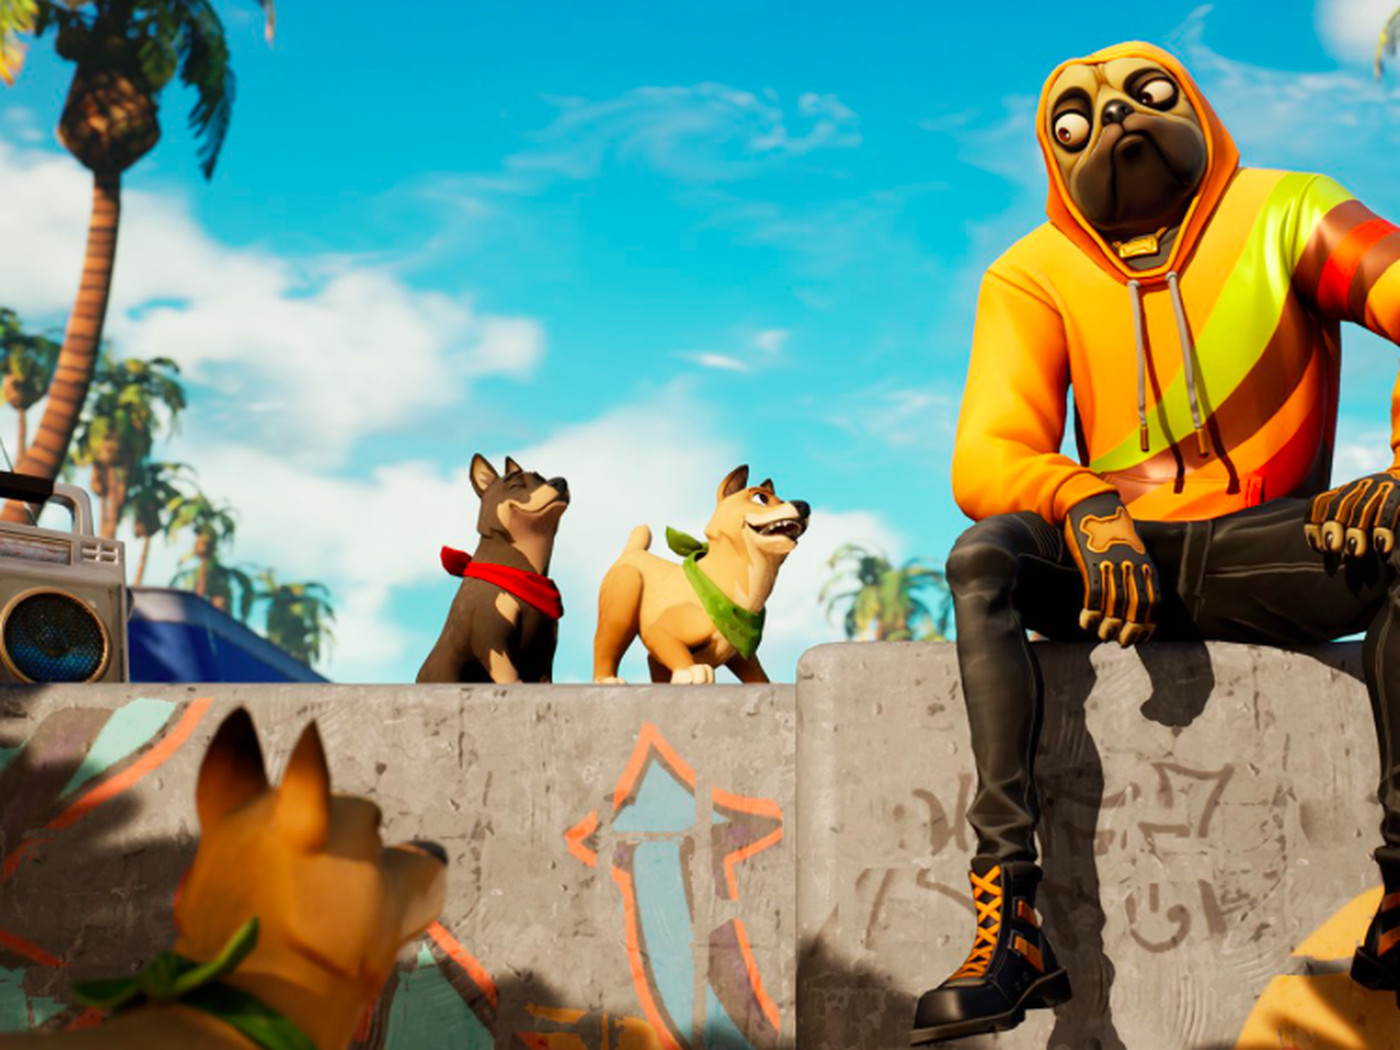 Fortnite data miners say Epic may be winning the fight over leaks